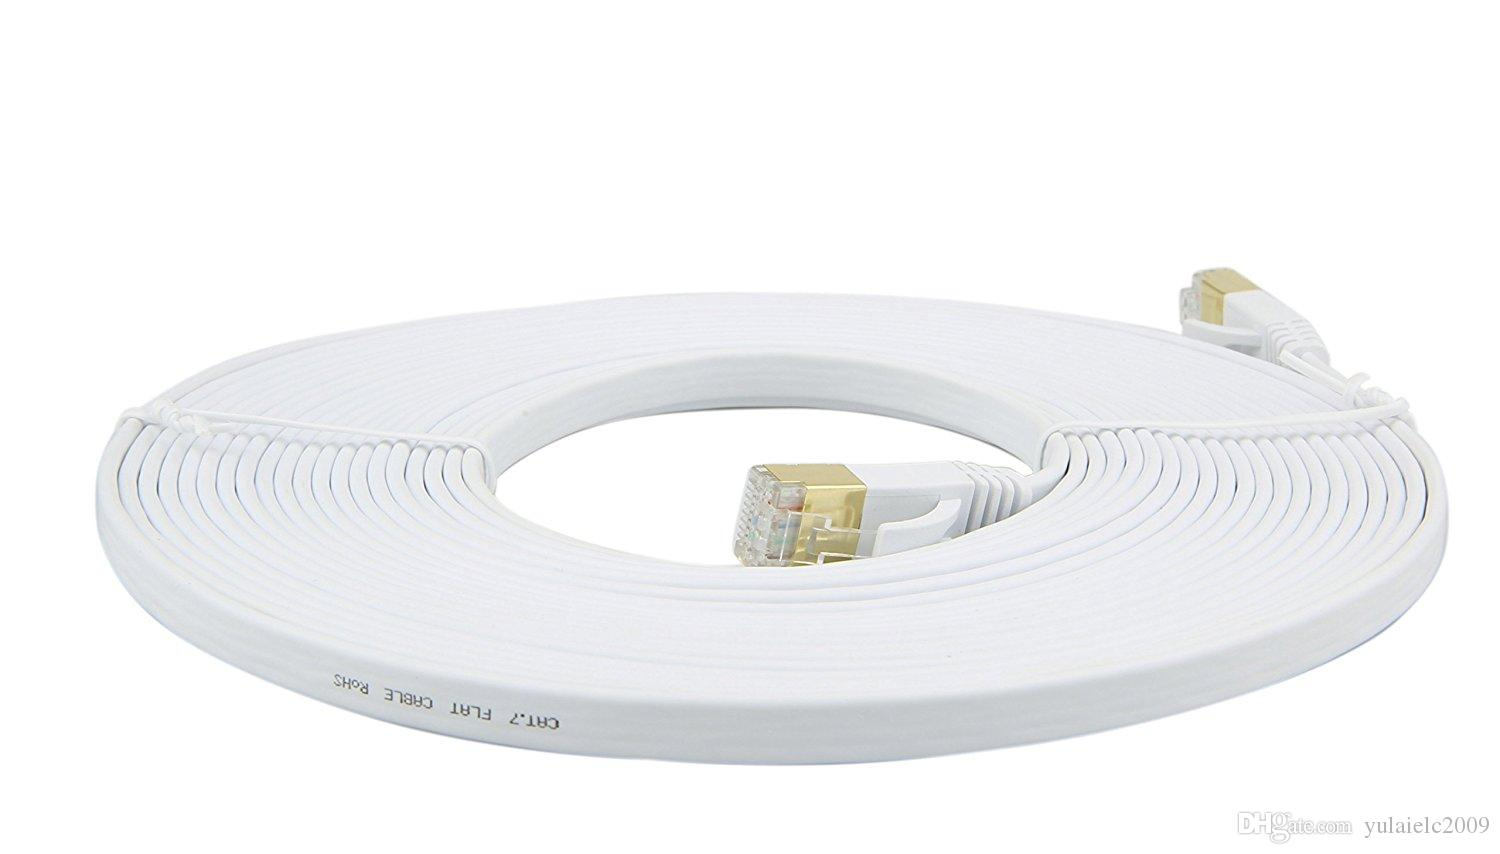 0.25m CAT7 High Speed Computer Gold Plated Plug STP Wires CAT7 RJ45 Ethernet LAN Networking Cable Professional Gold Network